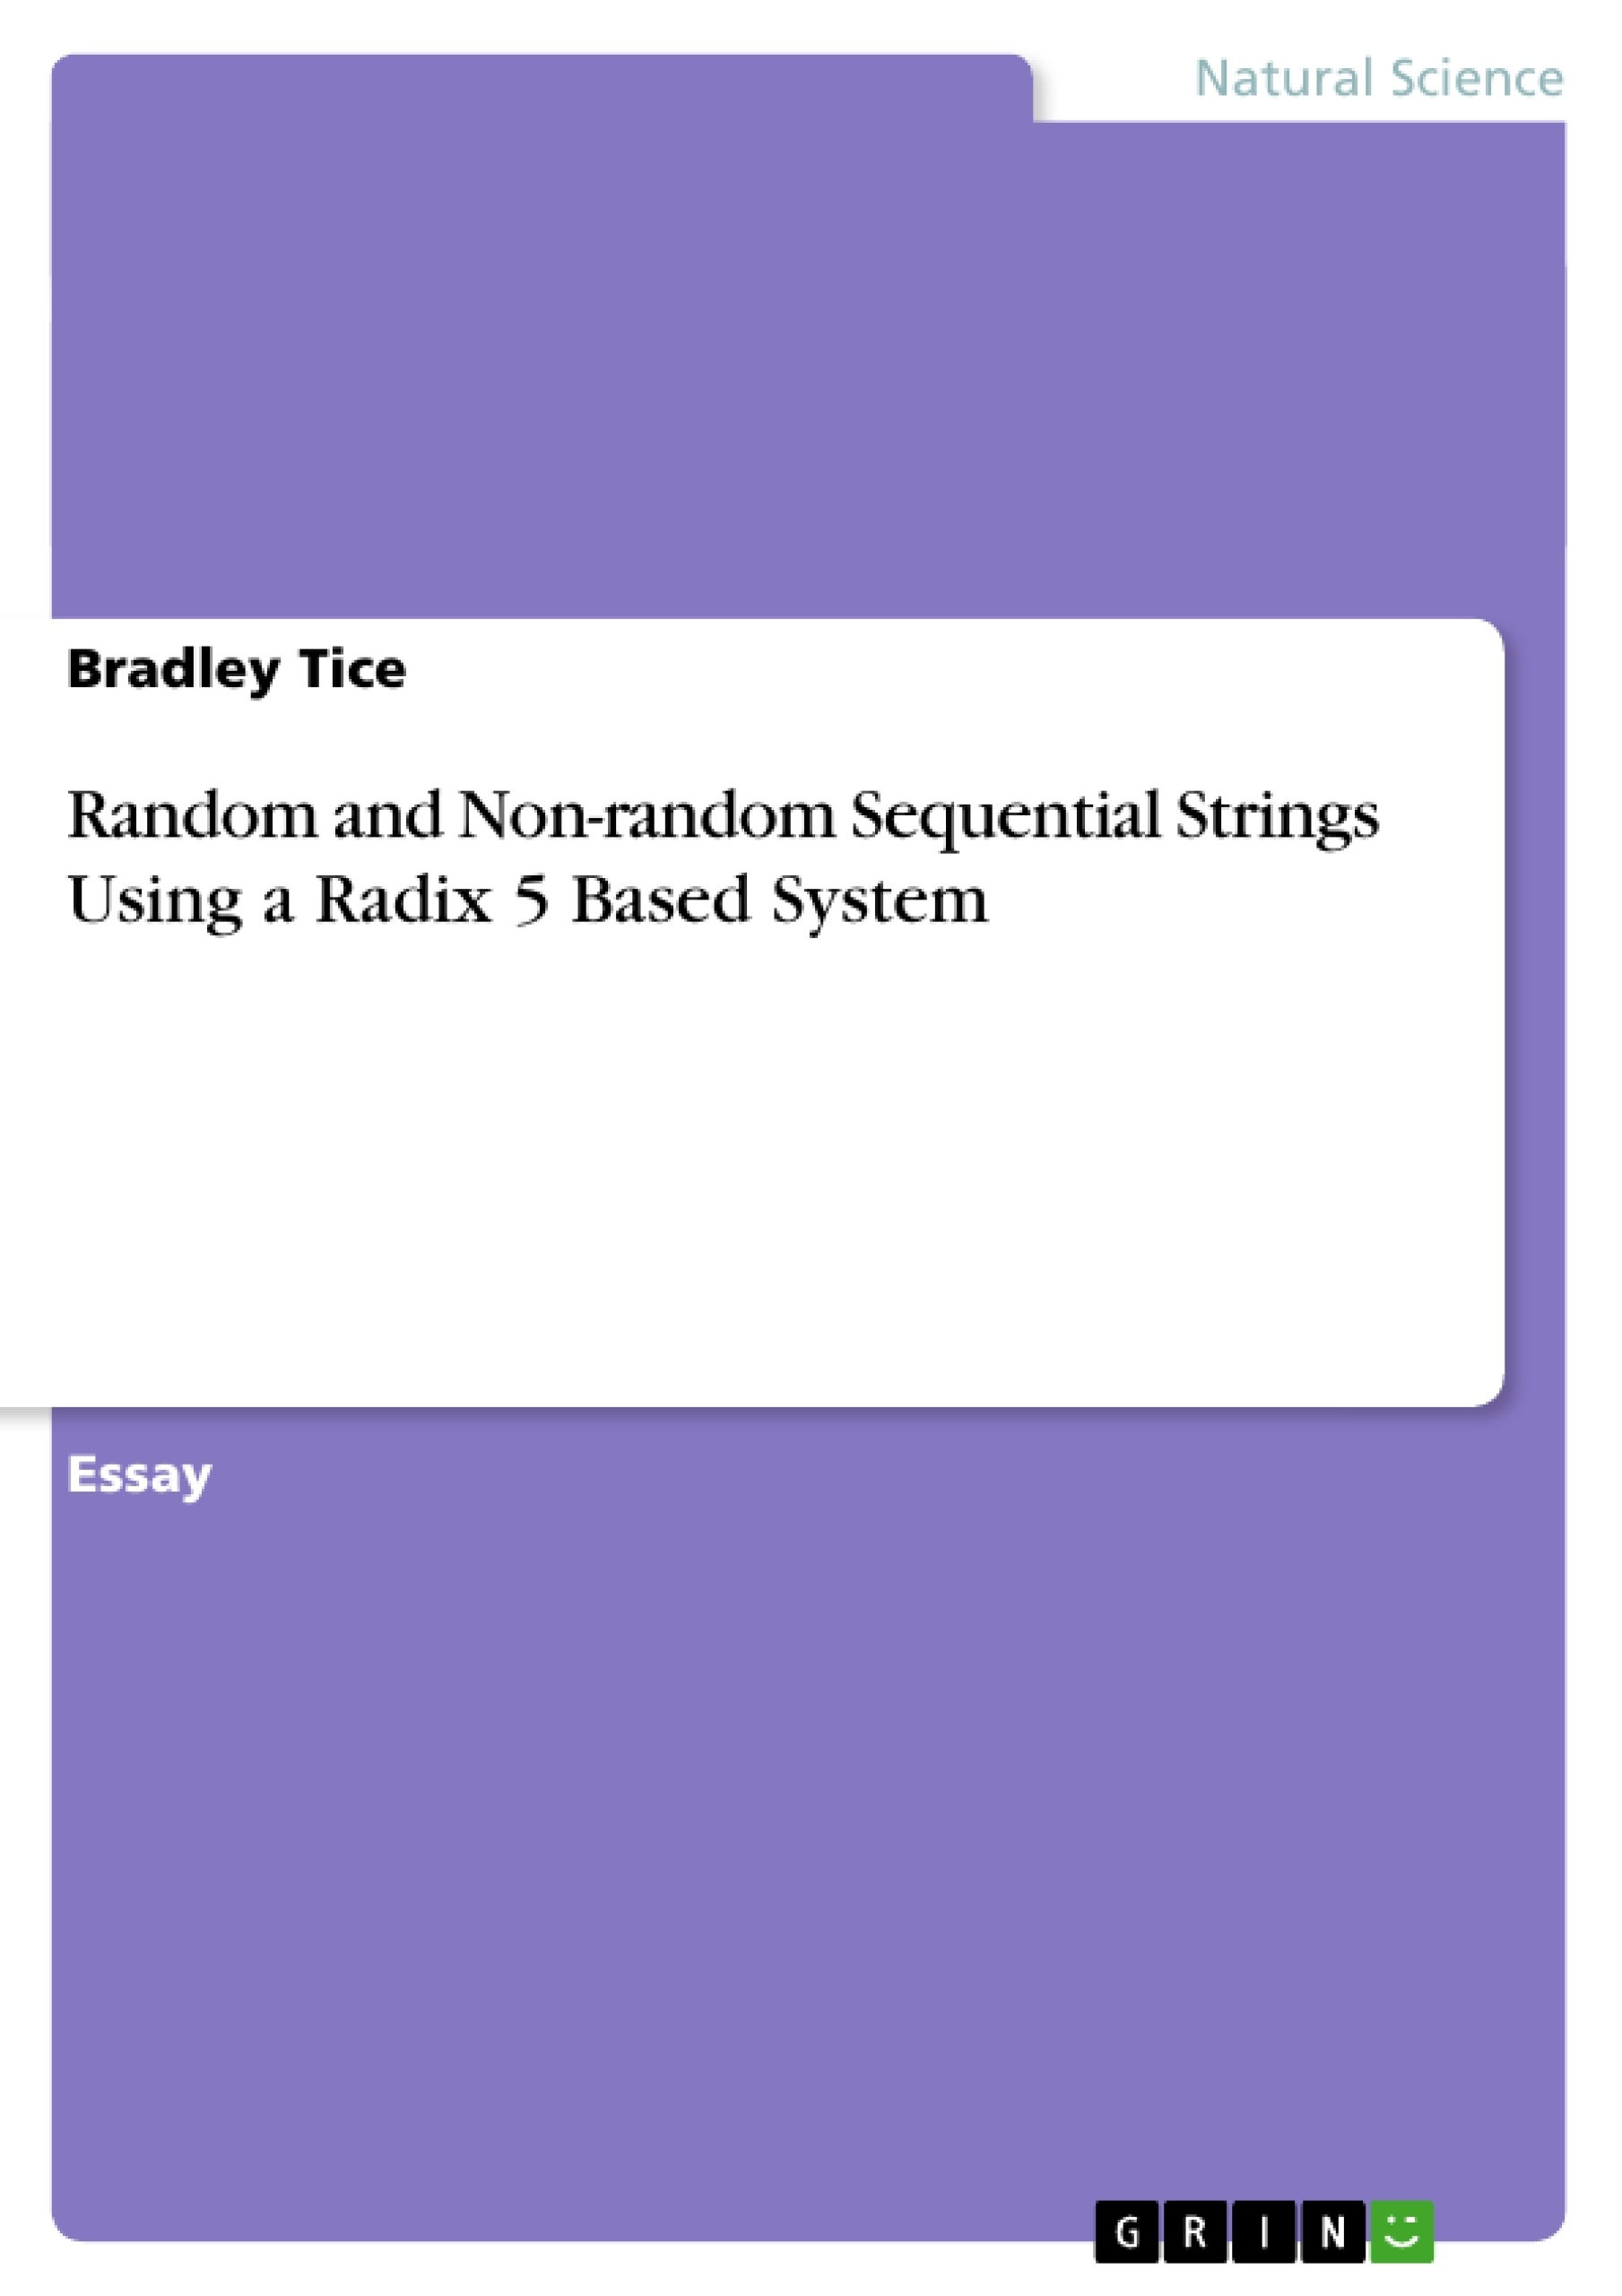 Title: Random and Non-random Sequential Strings Using a Radix 5 Based System